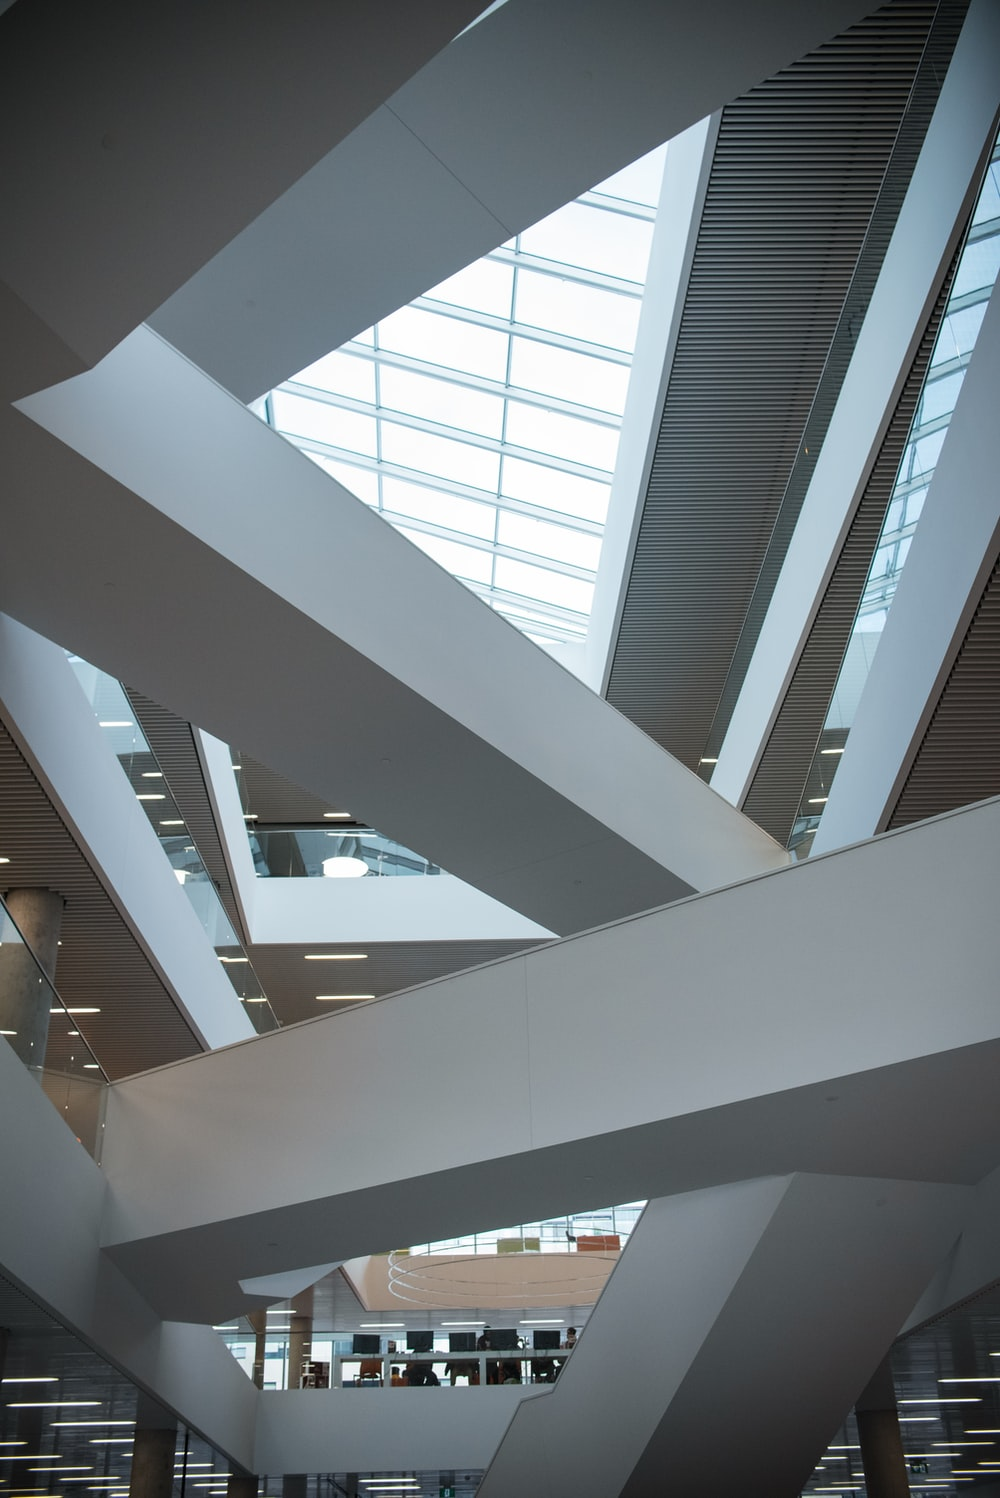 white painted building interior with clear glass ceiling